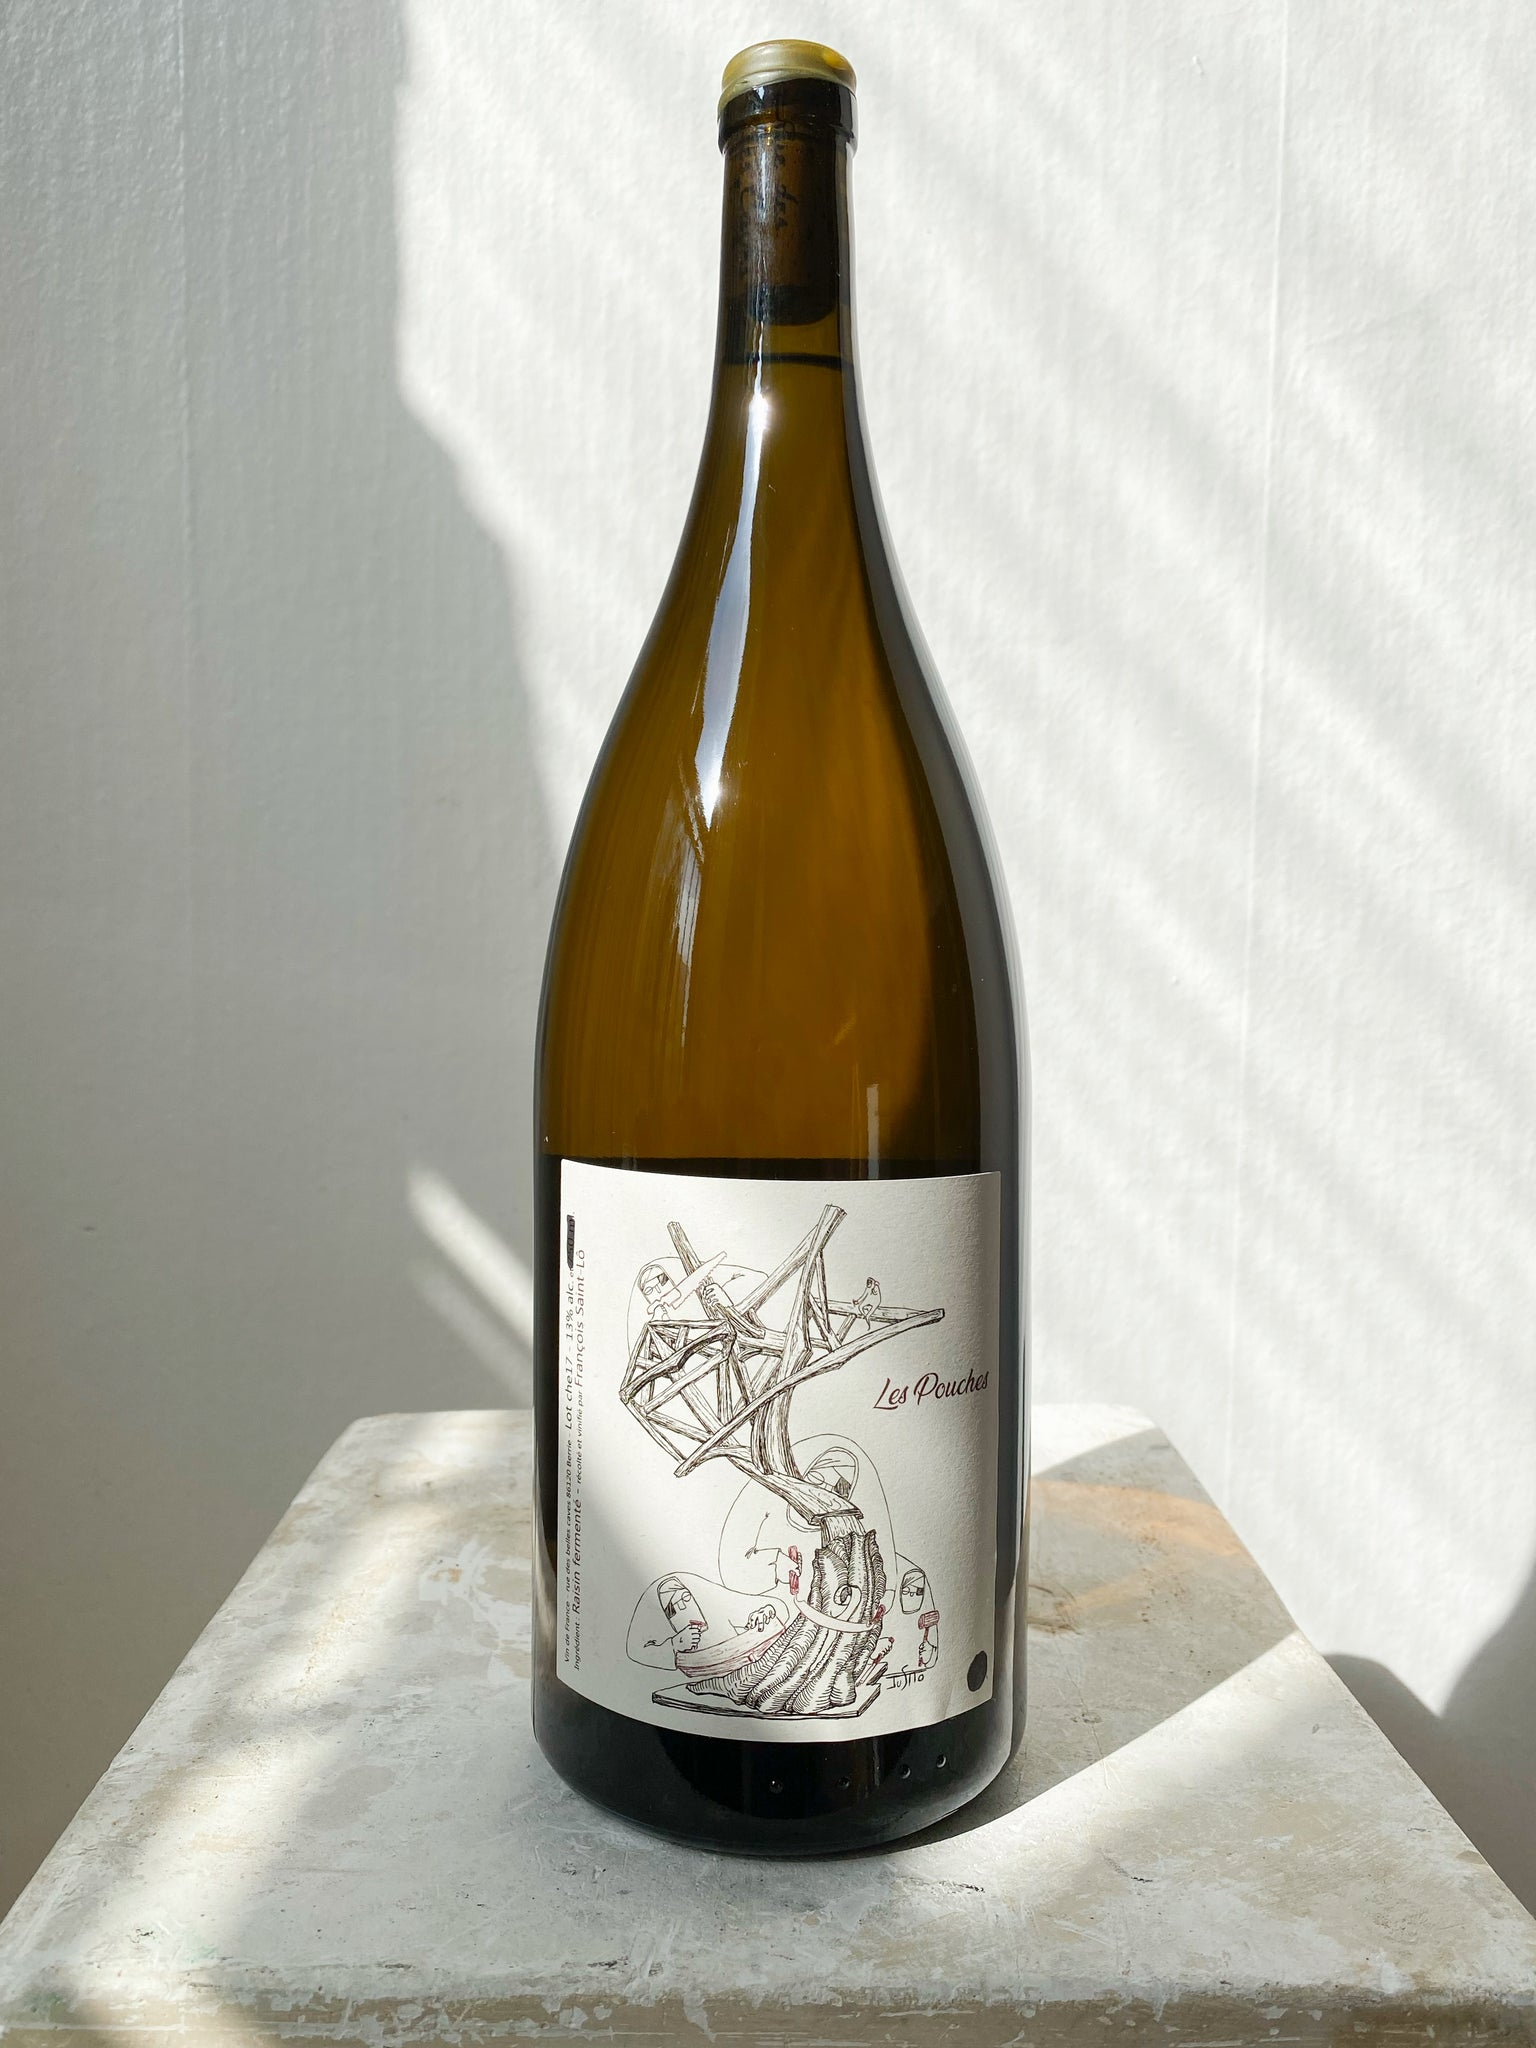 François Saint-Lô 'Les Pouches' 2017 MAGNUM BOTTLE